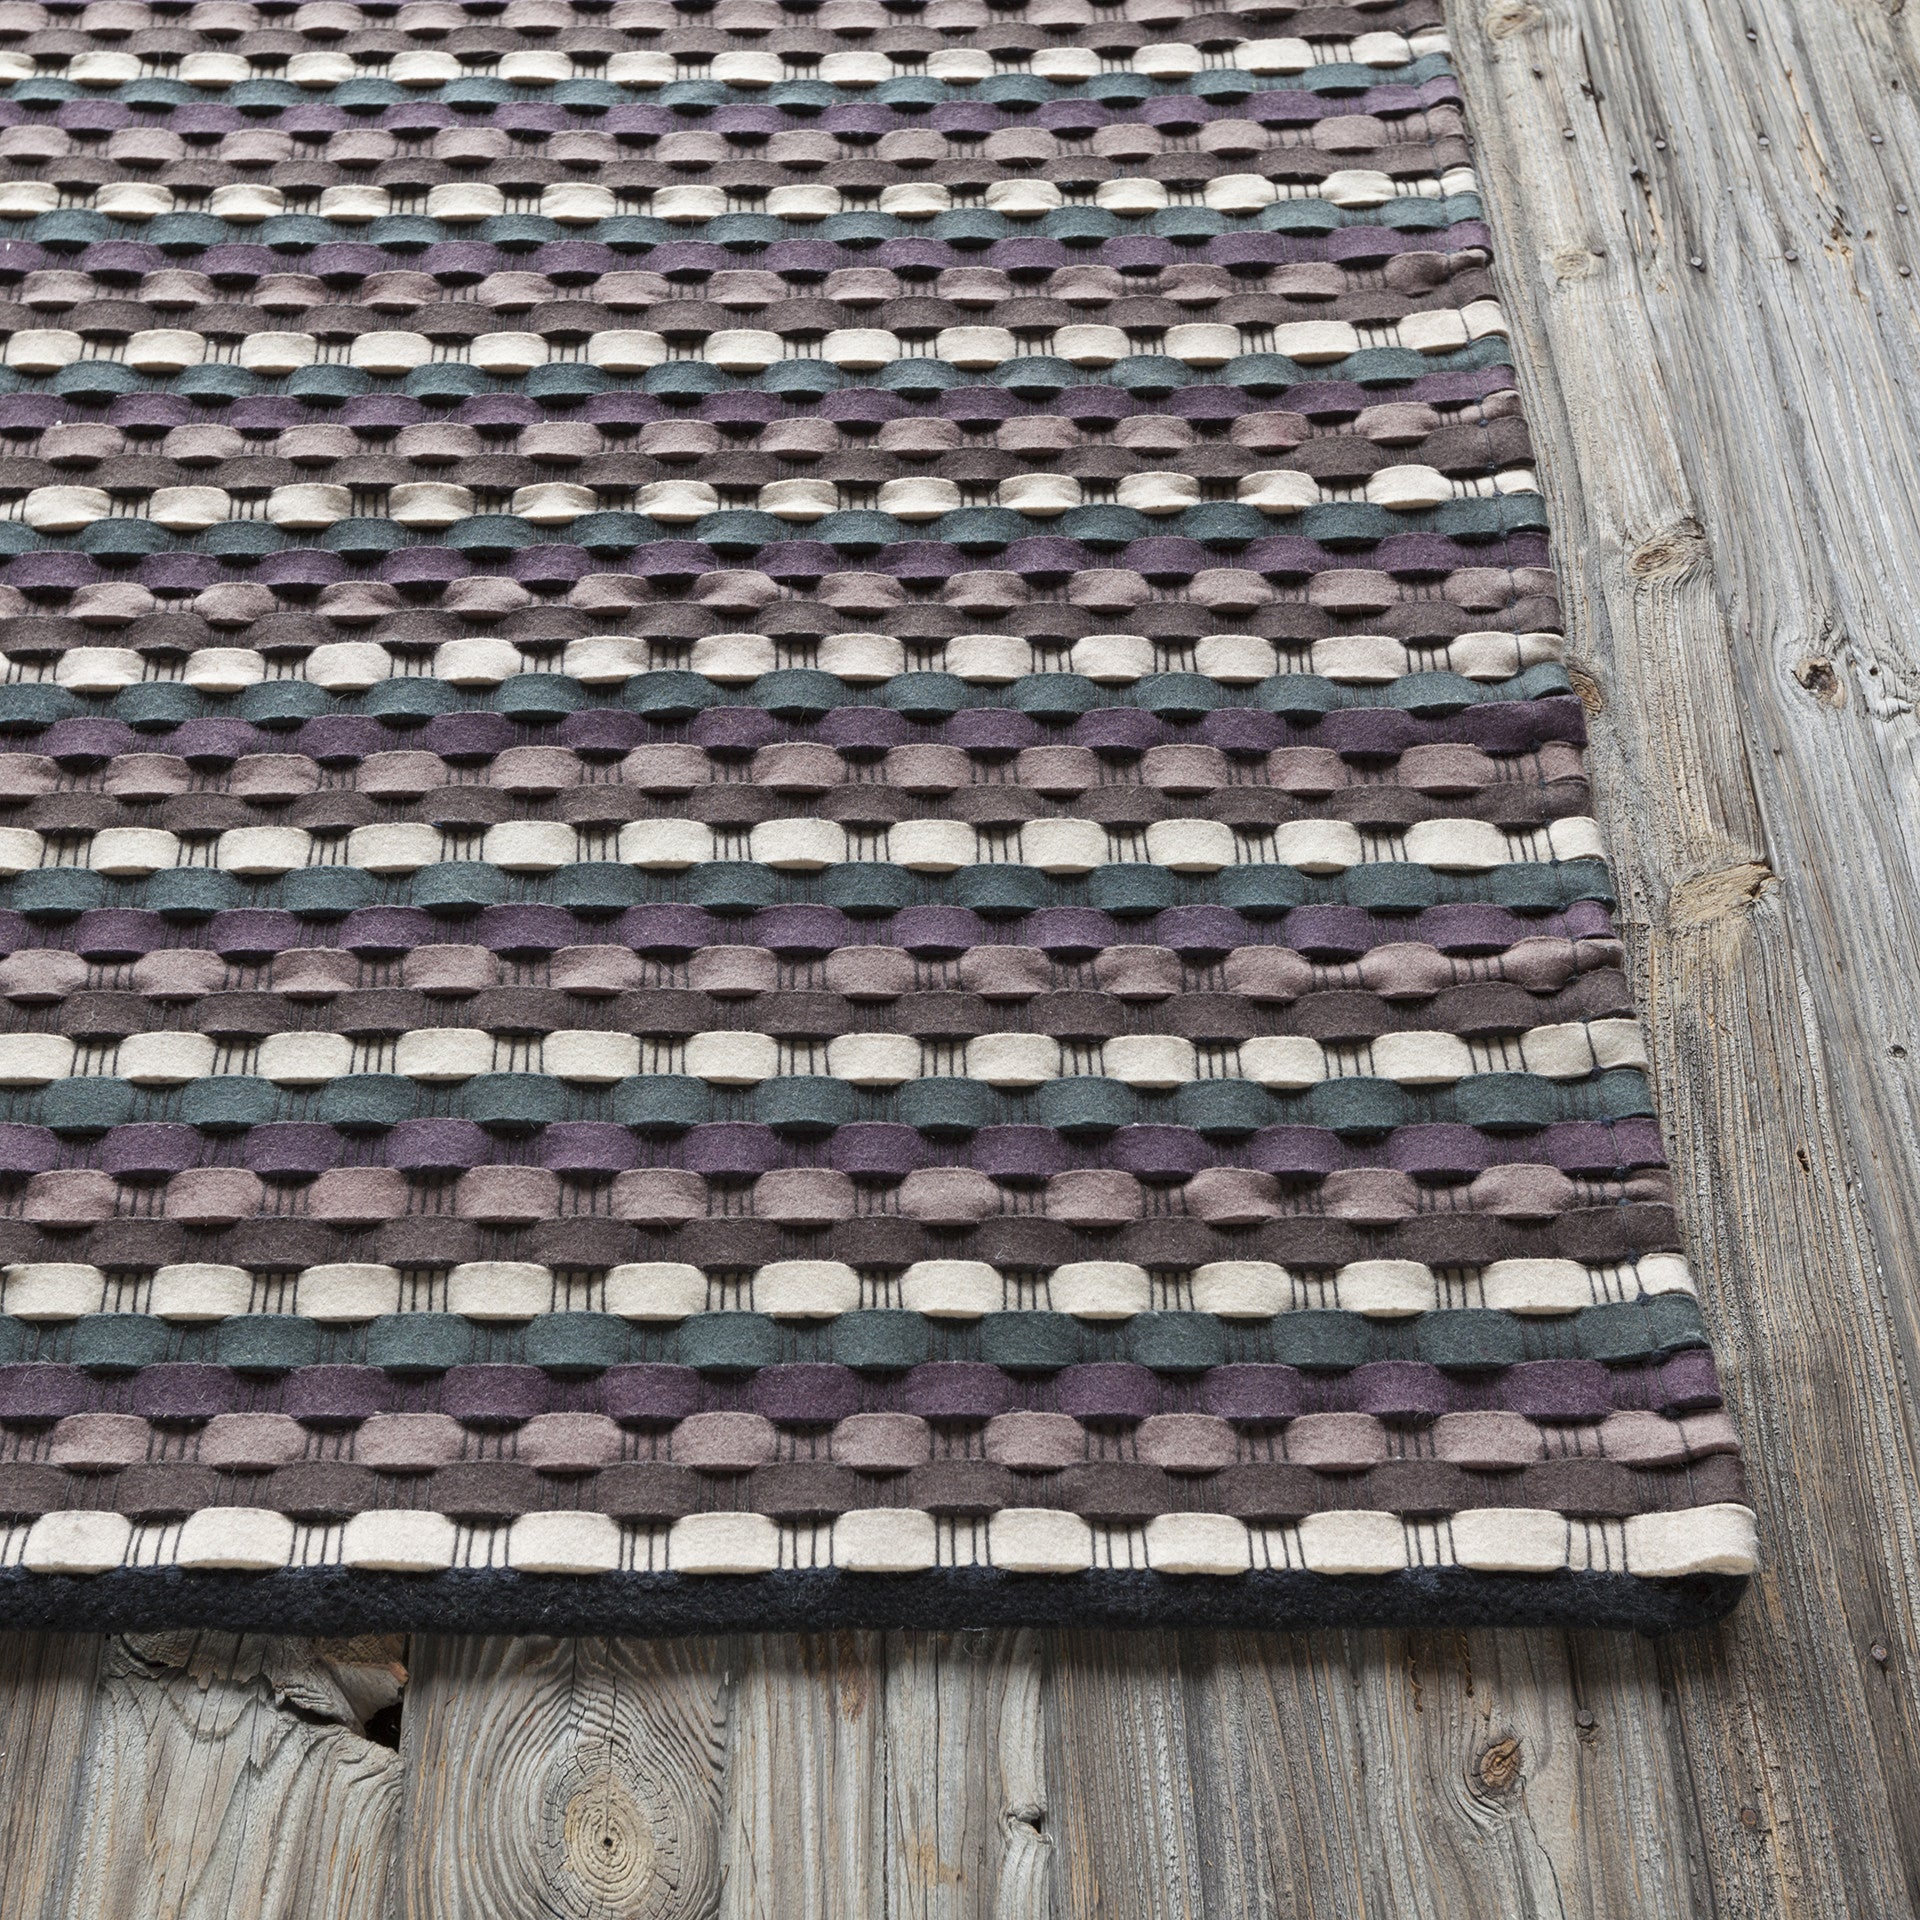 Dalamere Collection Hand Woven Area Rug In Charcoal Brown Purple